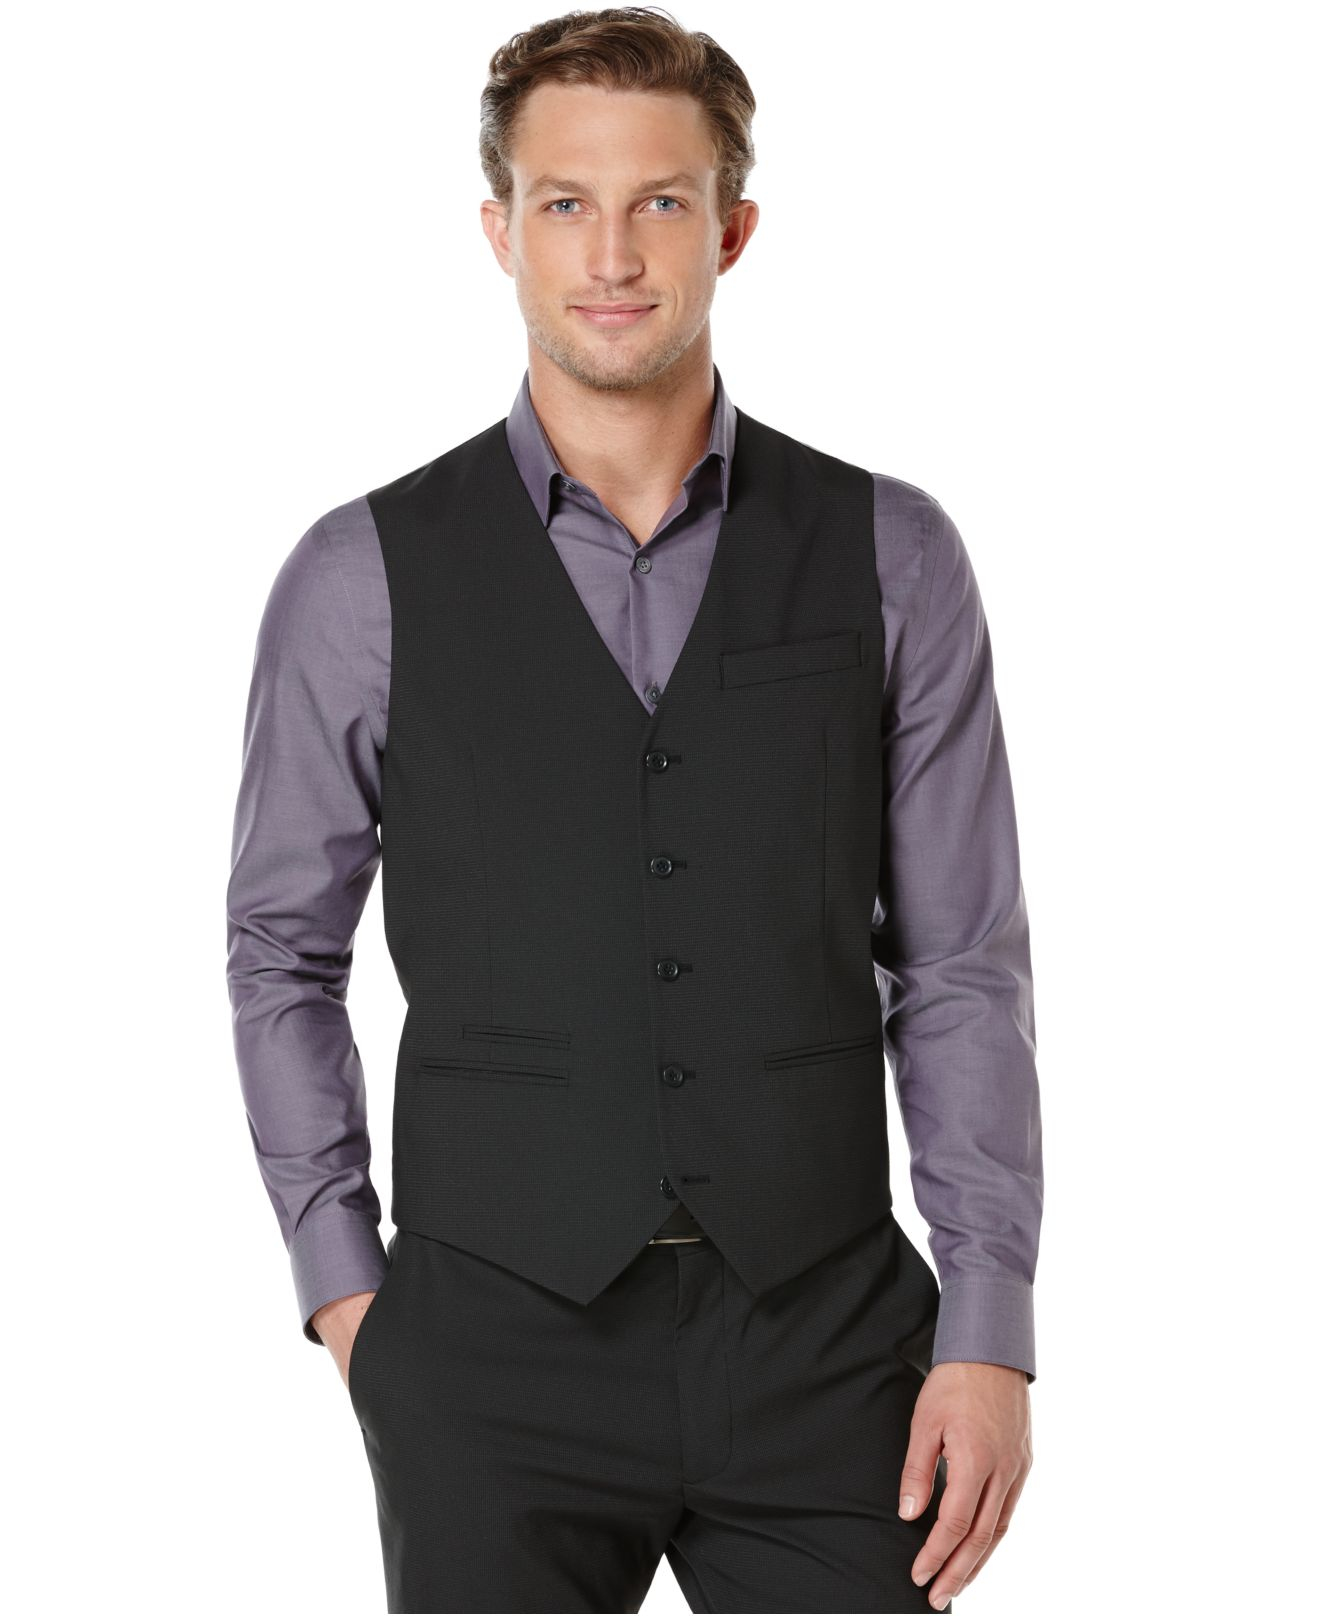 Black Suit With Vest Black Pictures to Pin on Pinterest - PinsDaddy